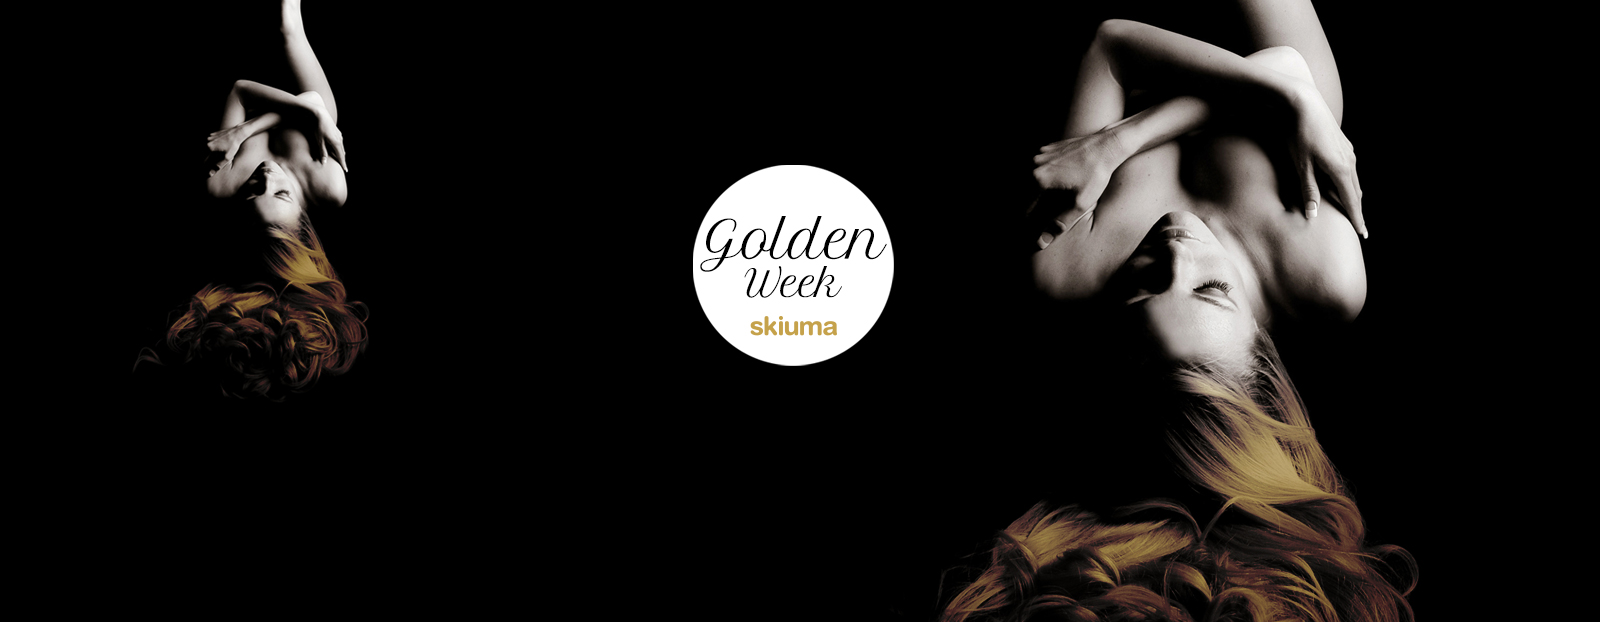 skiuma-testata-golden-week-2017